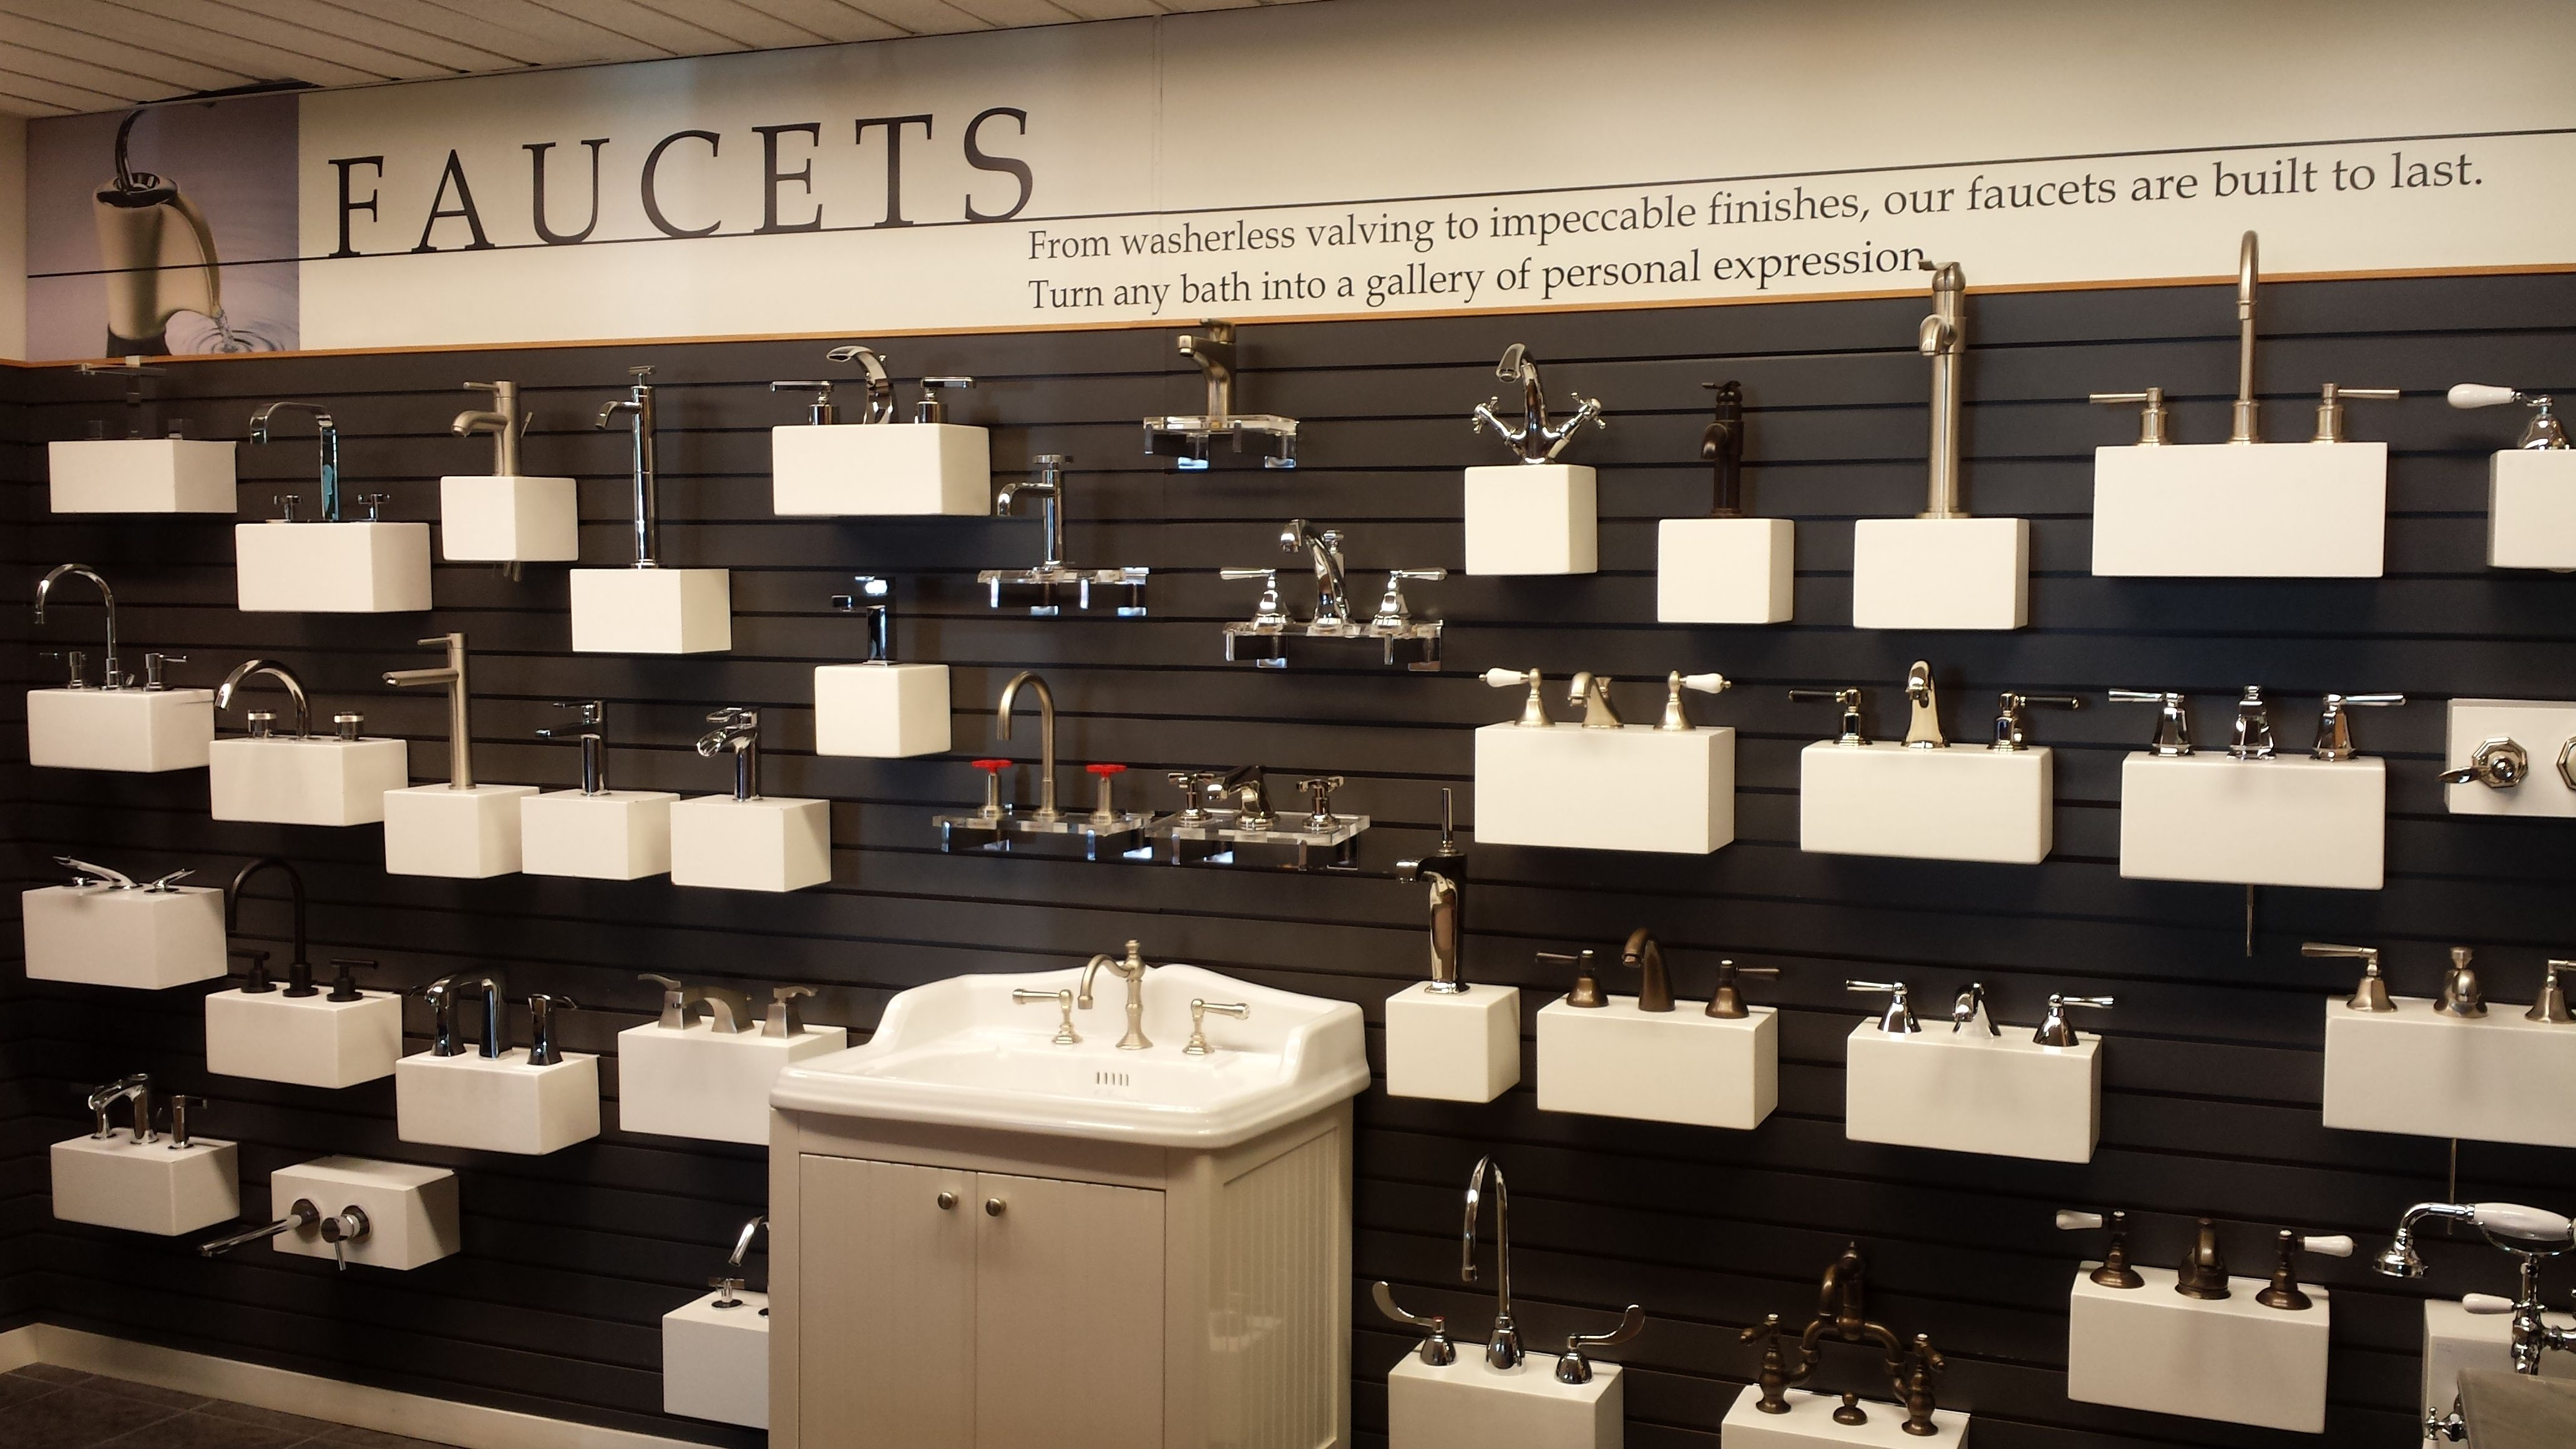 Lavatory faucet wall including California Faucets  Jewel  Rohl  Sigma   Kohler  Graff. Lavatory faucet wall including California Faucets  Jewel  Rohl